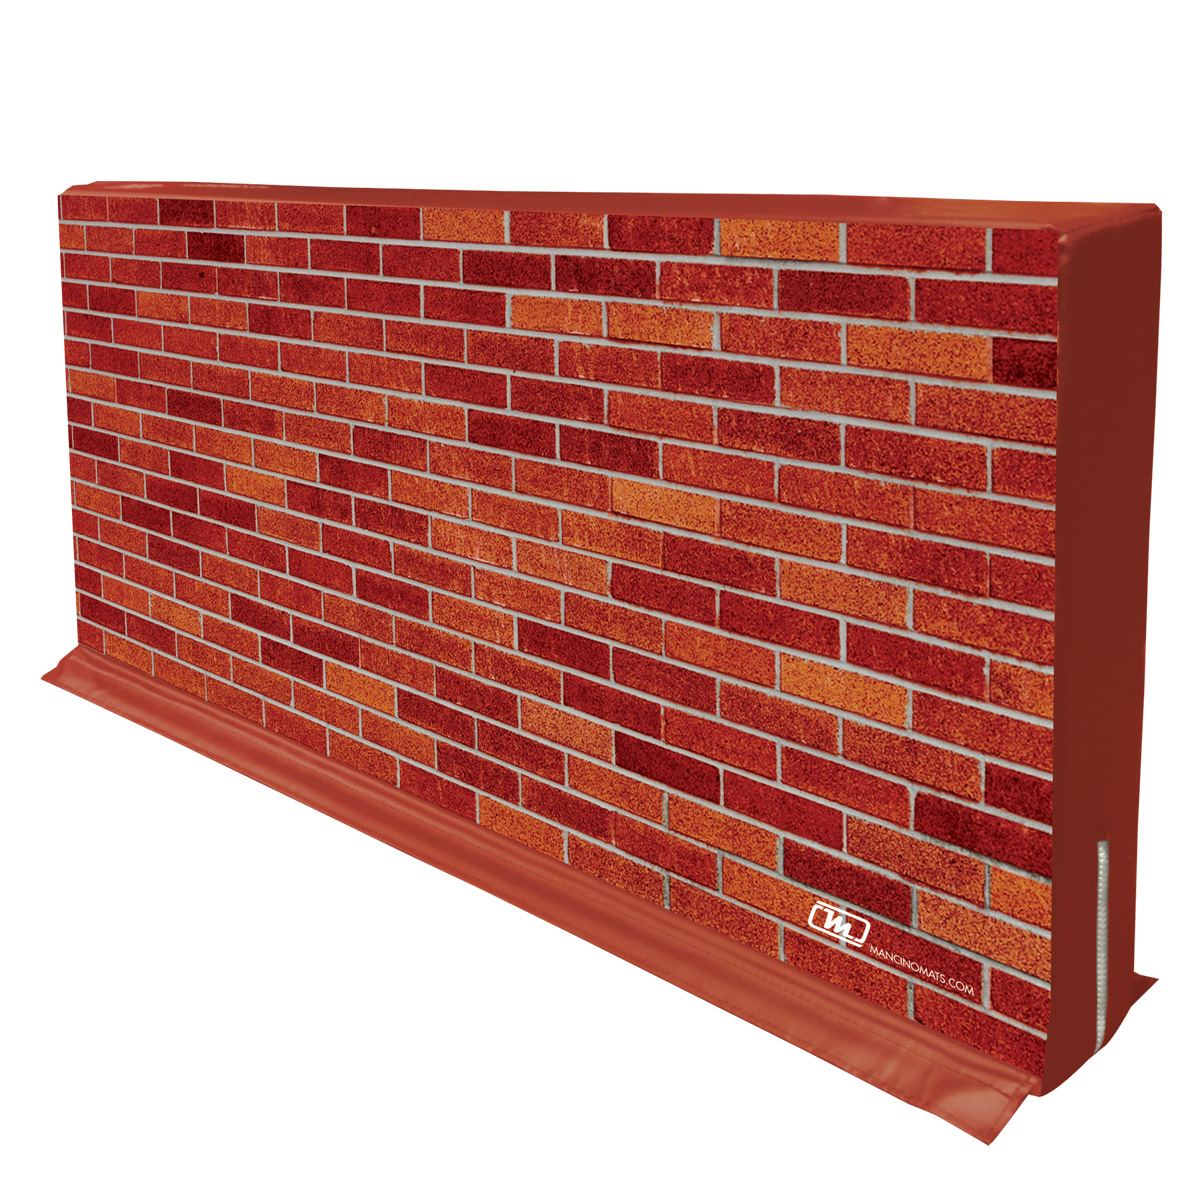 mancino mats brick wall hedge divider partition for creating separate areas